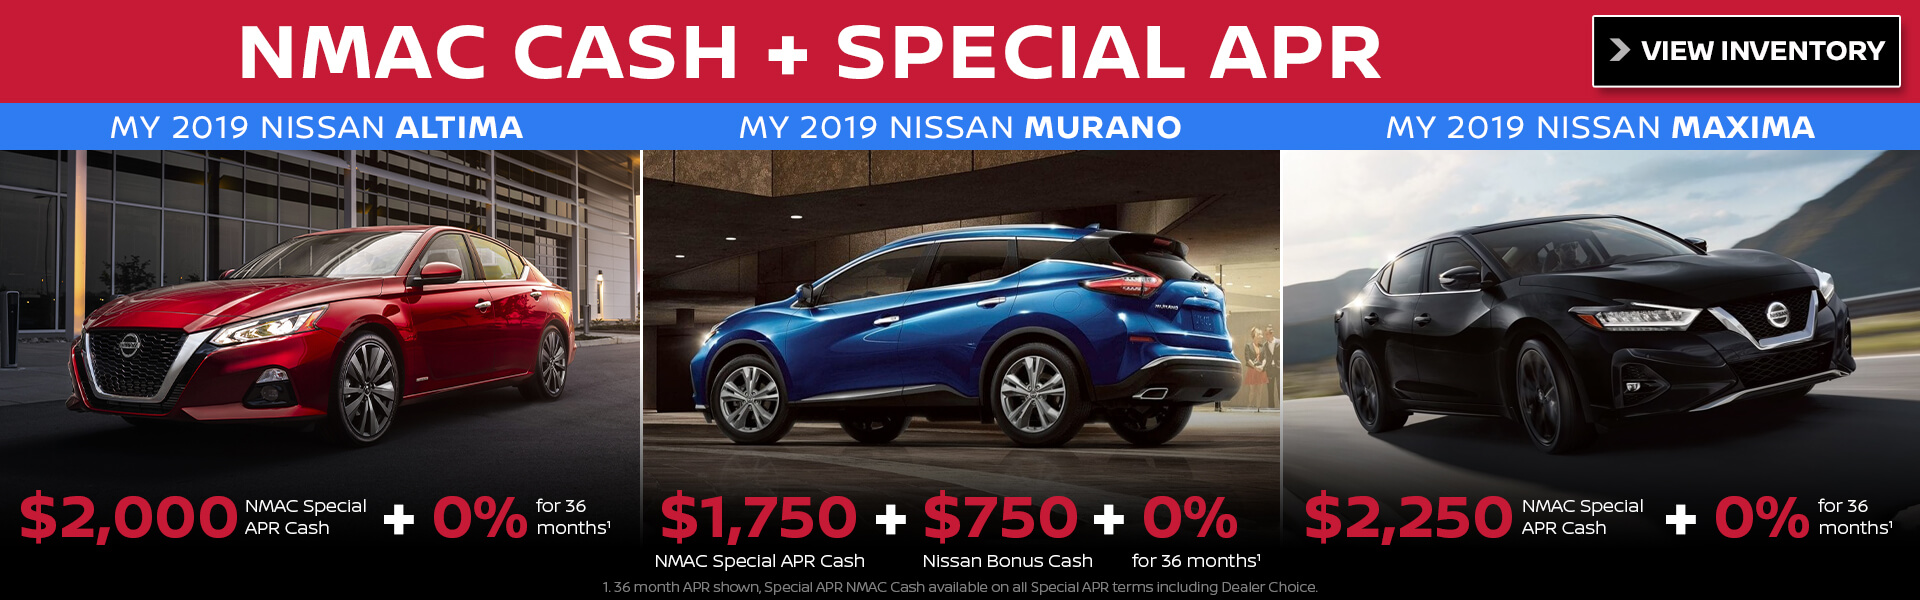 New & Used Cars For Sale In Los Angeles At Nissan Mission Hills